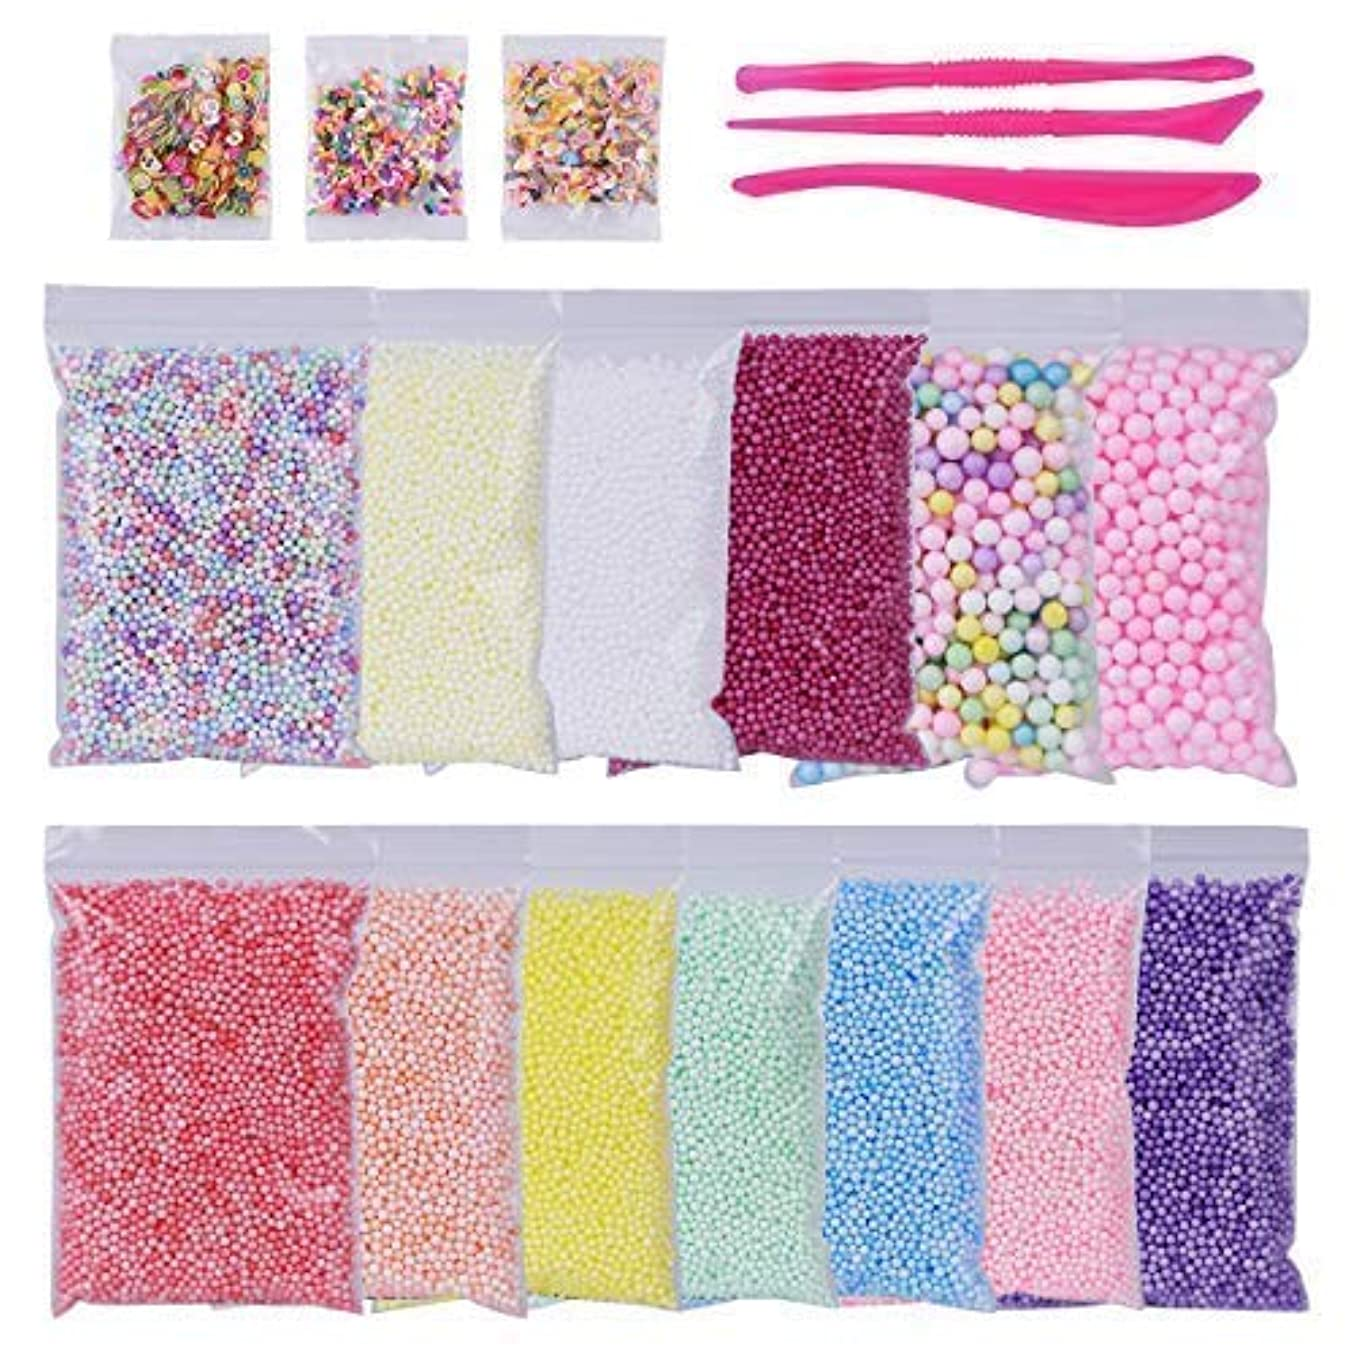 Cuttte Foam Balls for DIY Slime, 16 Packs Approx 94,800 PCS Slime Floam Beads, Slime Supplies Kits Including Fruit, Cupcake and Candy Slices for Slime Making, Arts Crafts